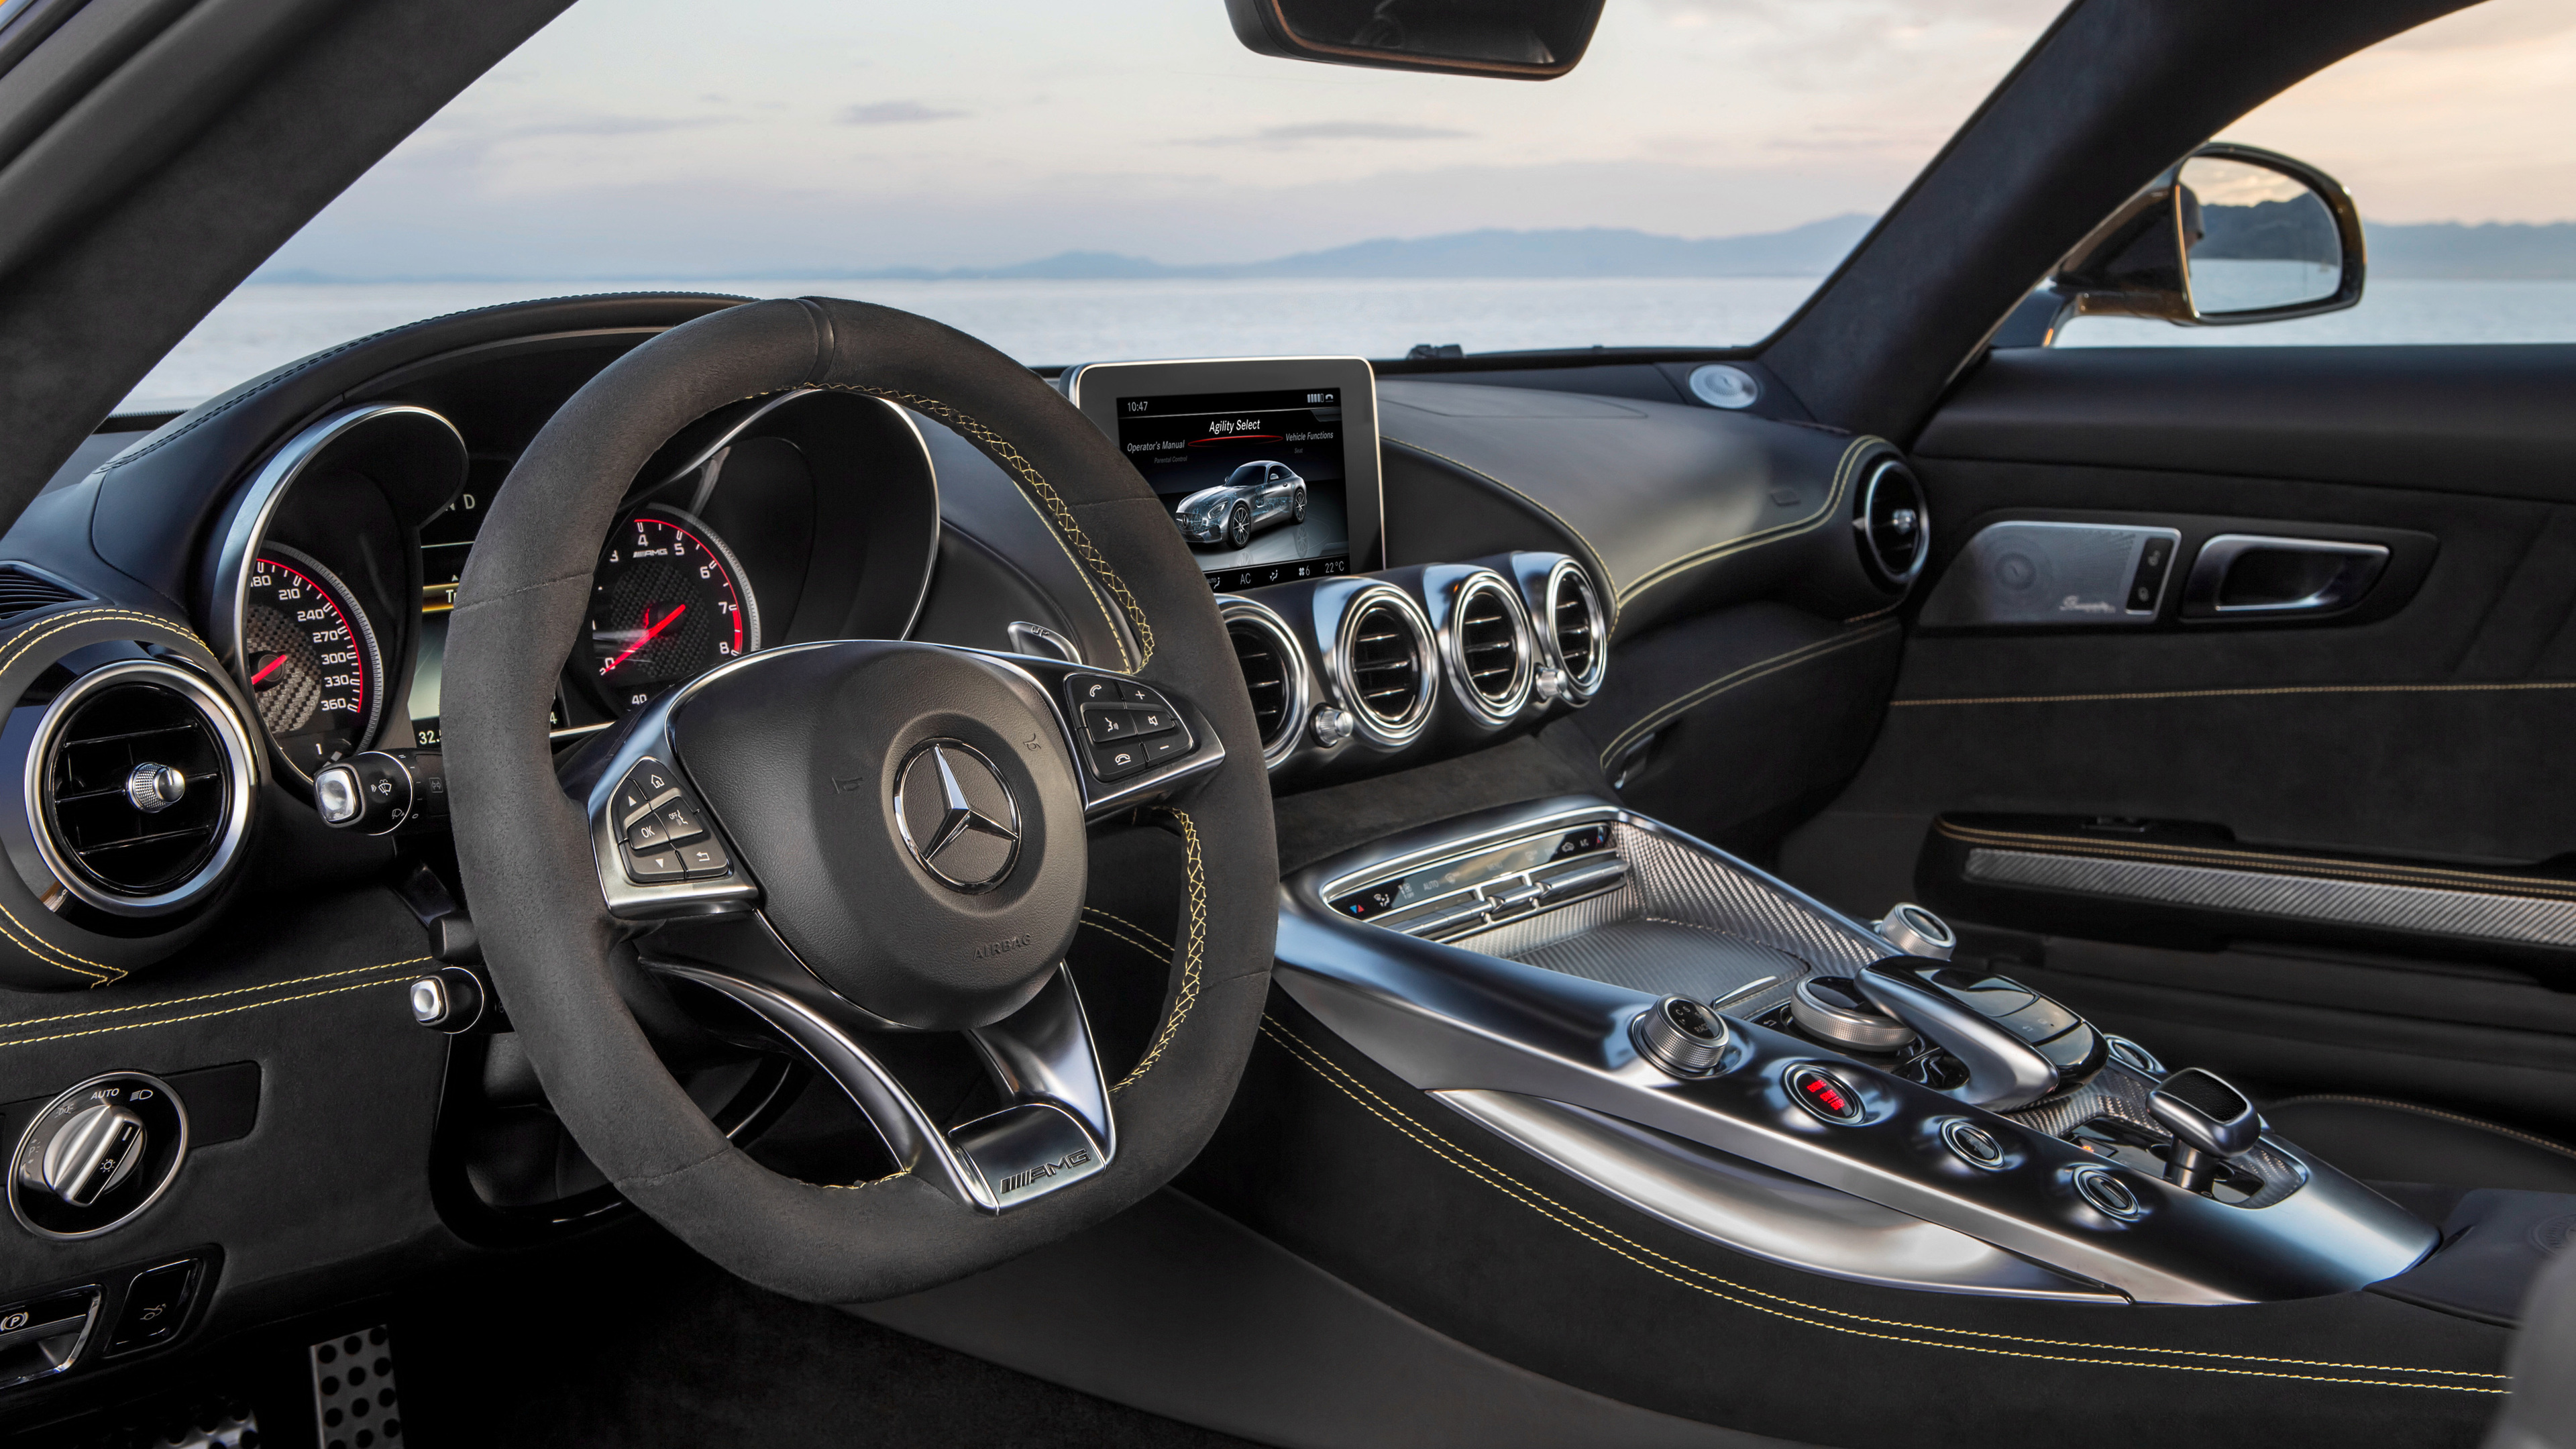 mercedes amg gt s 2017 interior 1539108916 - Mercedes AMG GT S 2017 Interior - mercedes wallpapers, mercedes amg wallpapers, interior wallpapers, hd-wallpapers, cars wallpapers, 4k-wallpapers, 2017 cars wallpapers